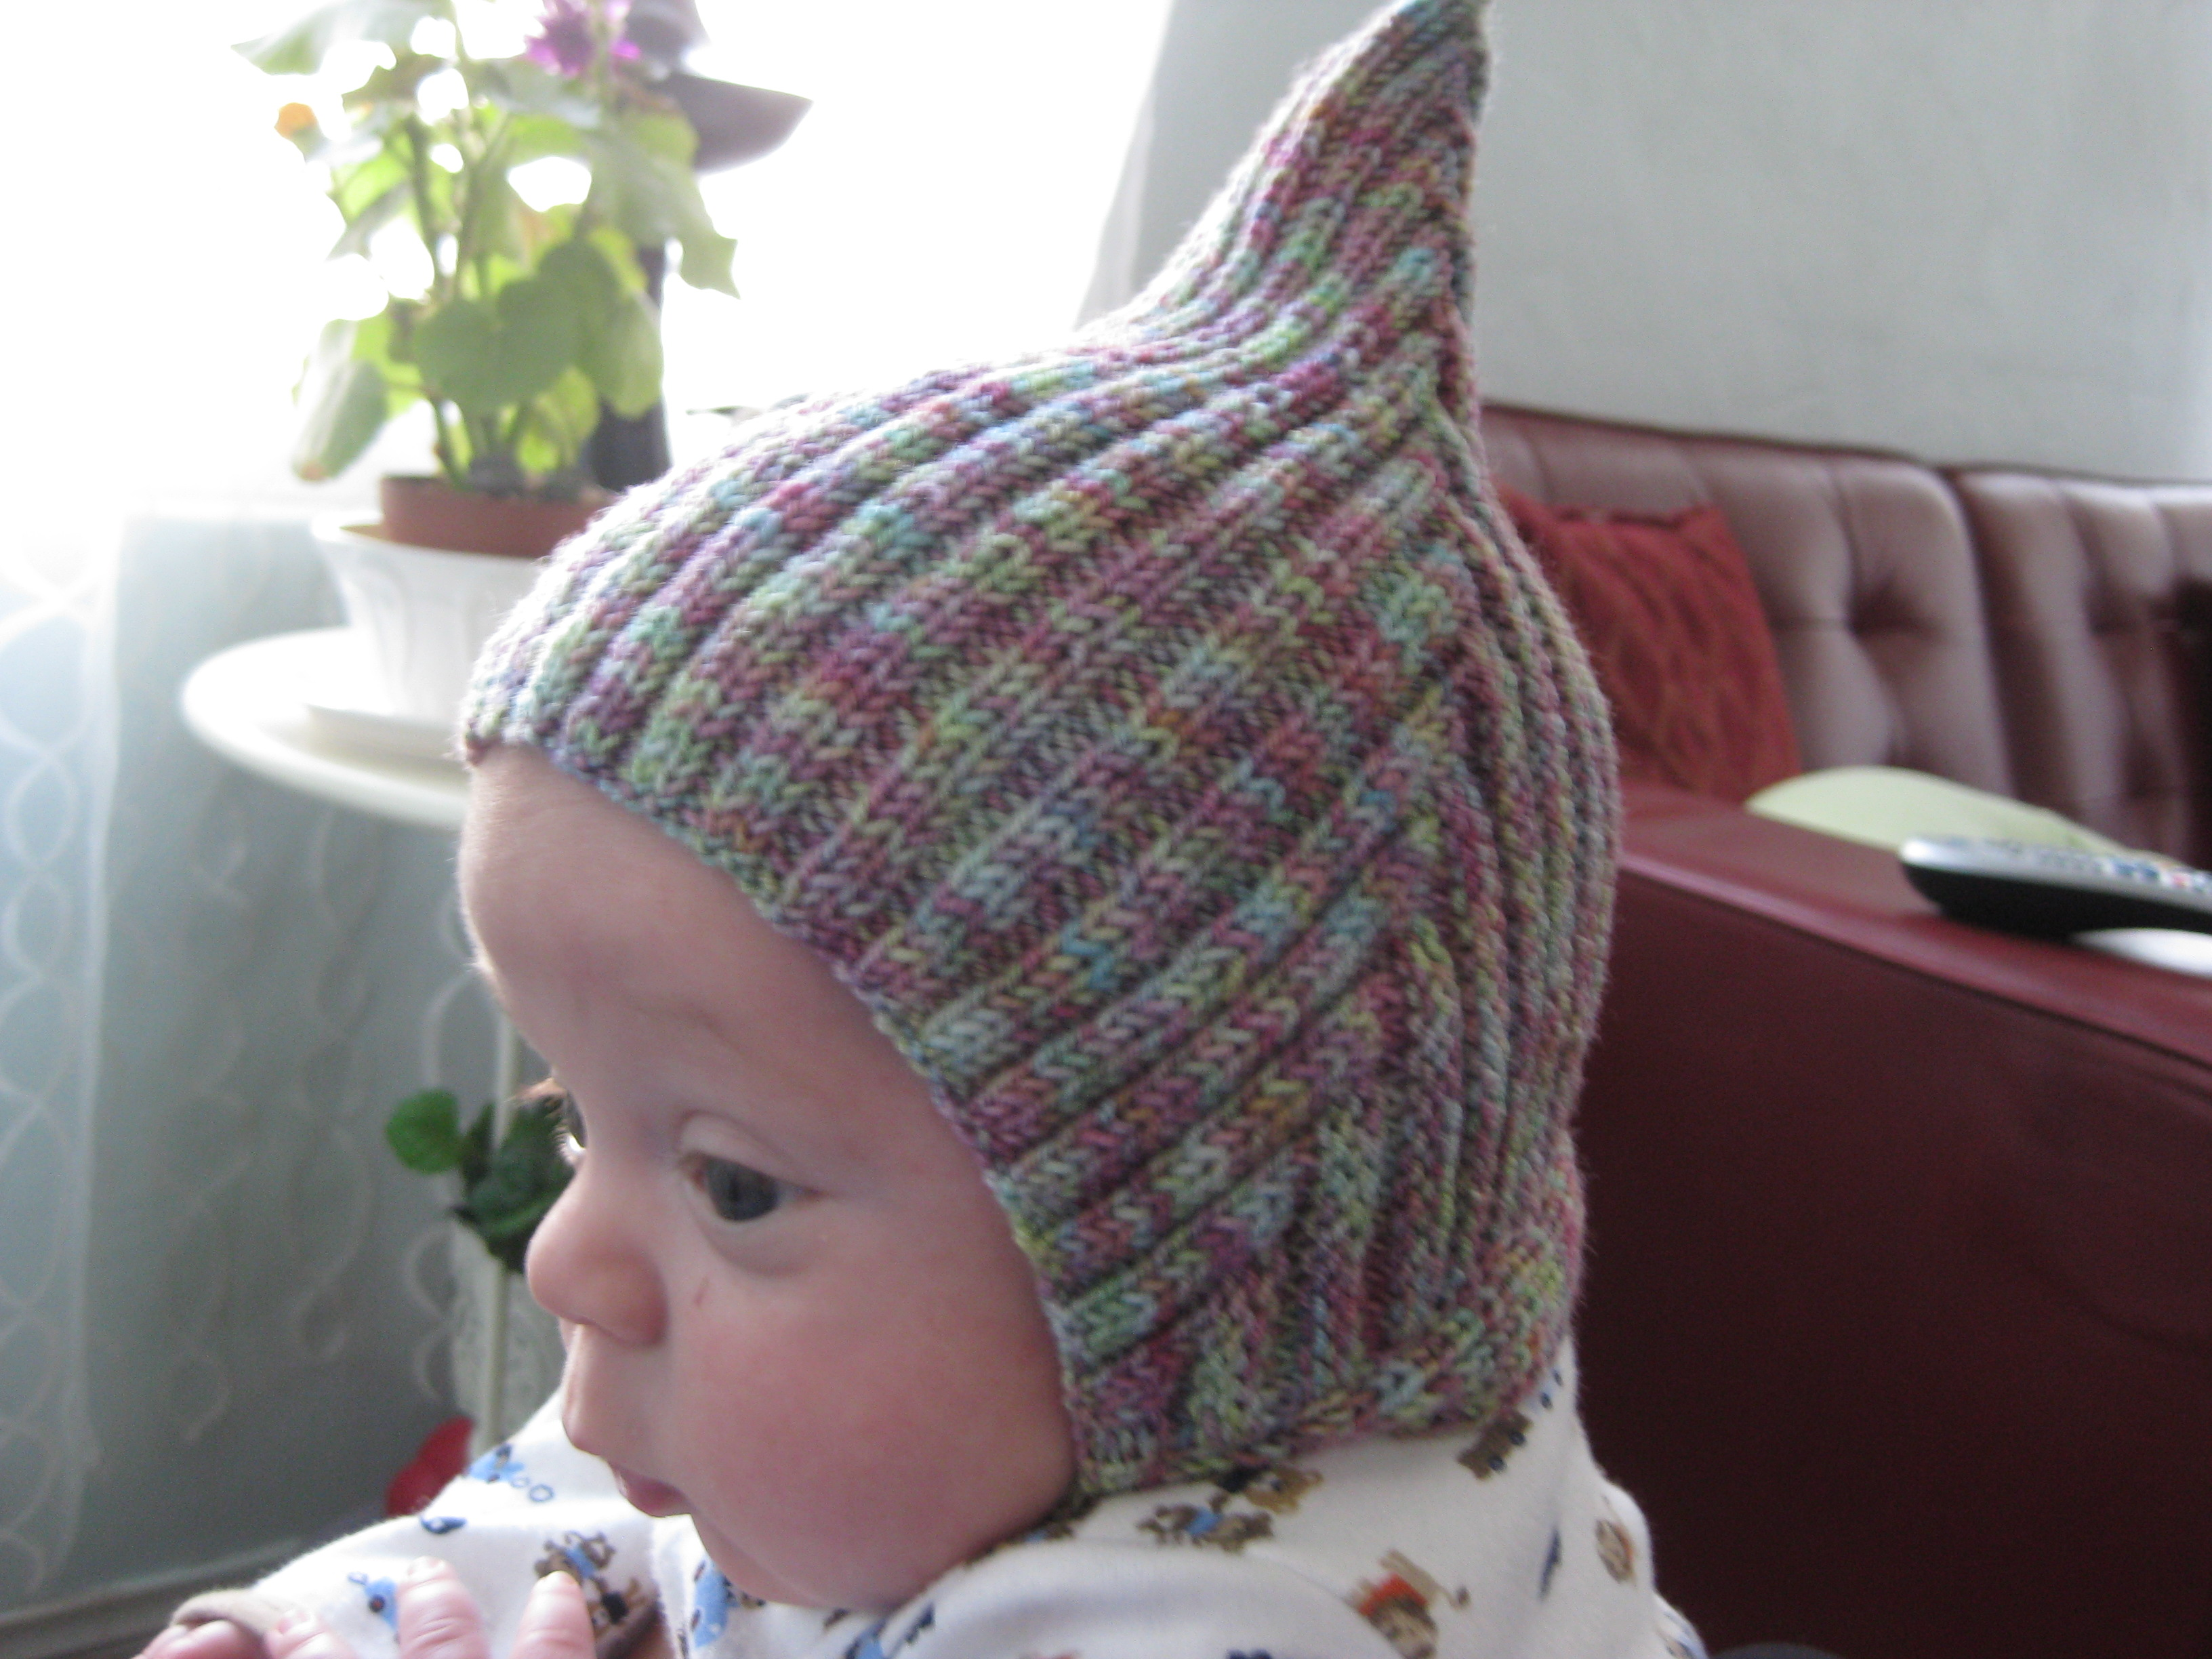 Adorable pixie, elf or gnome hat for baby - free pattern! - Charm ...